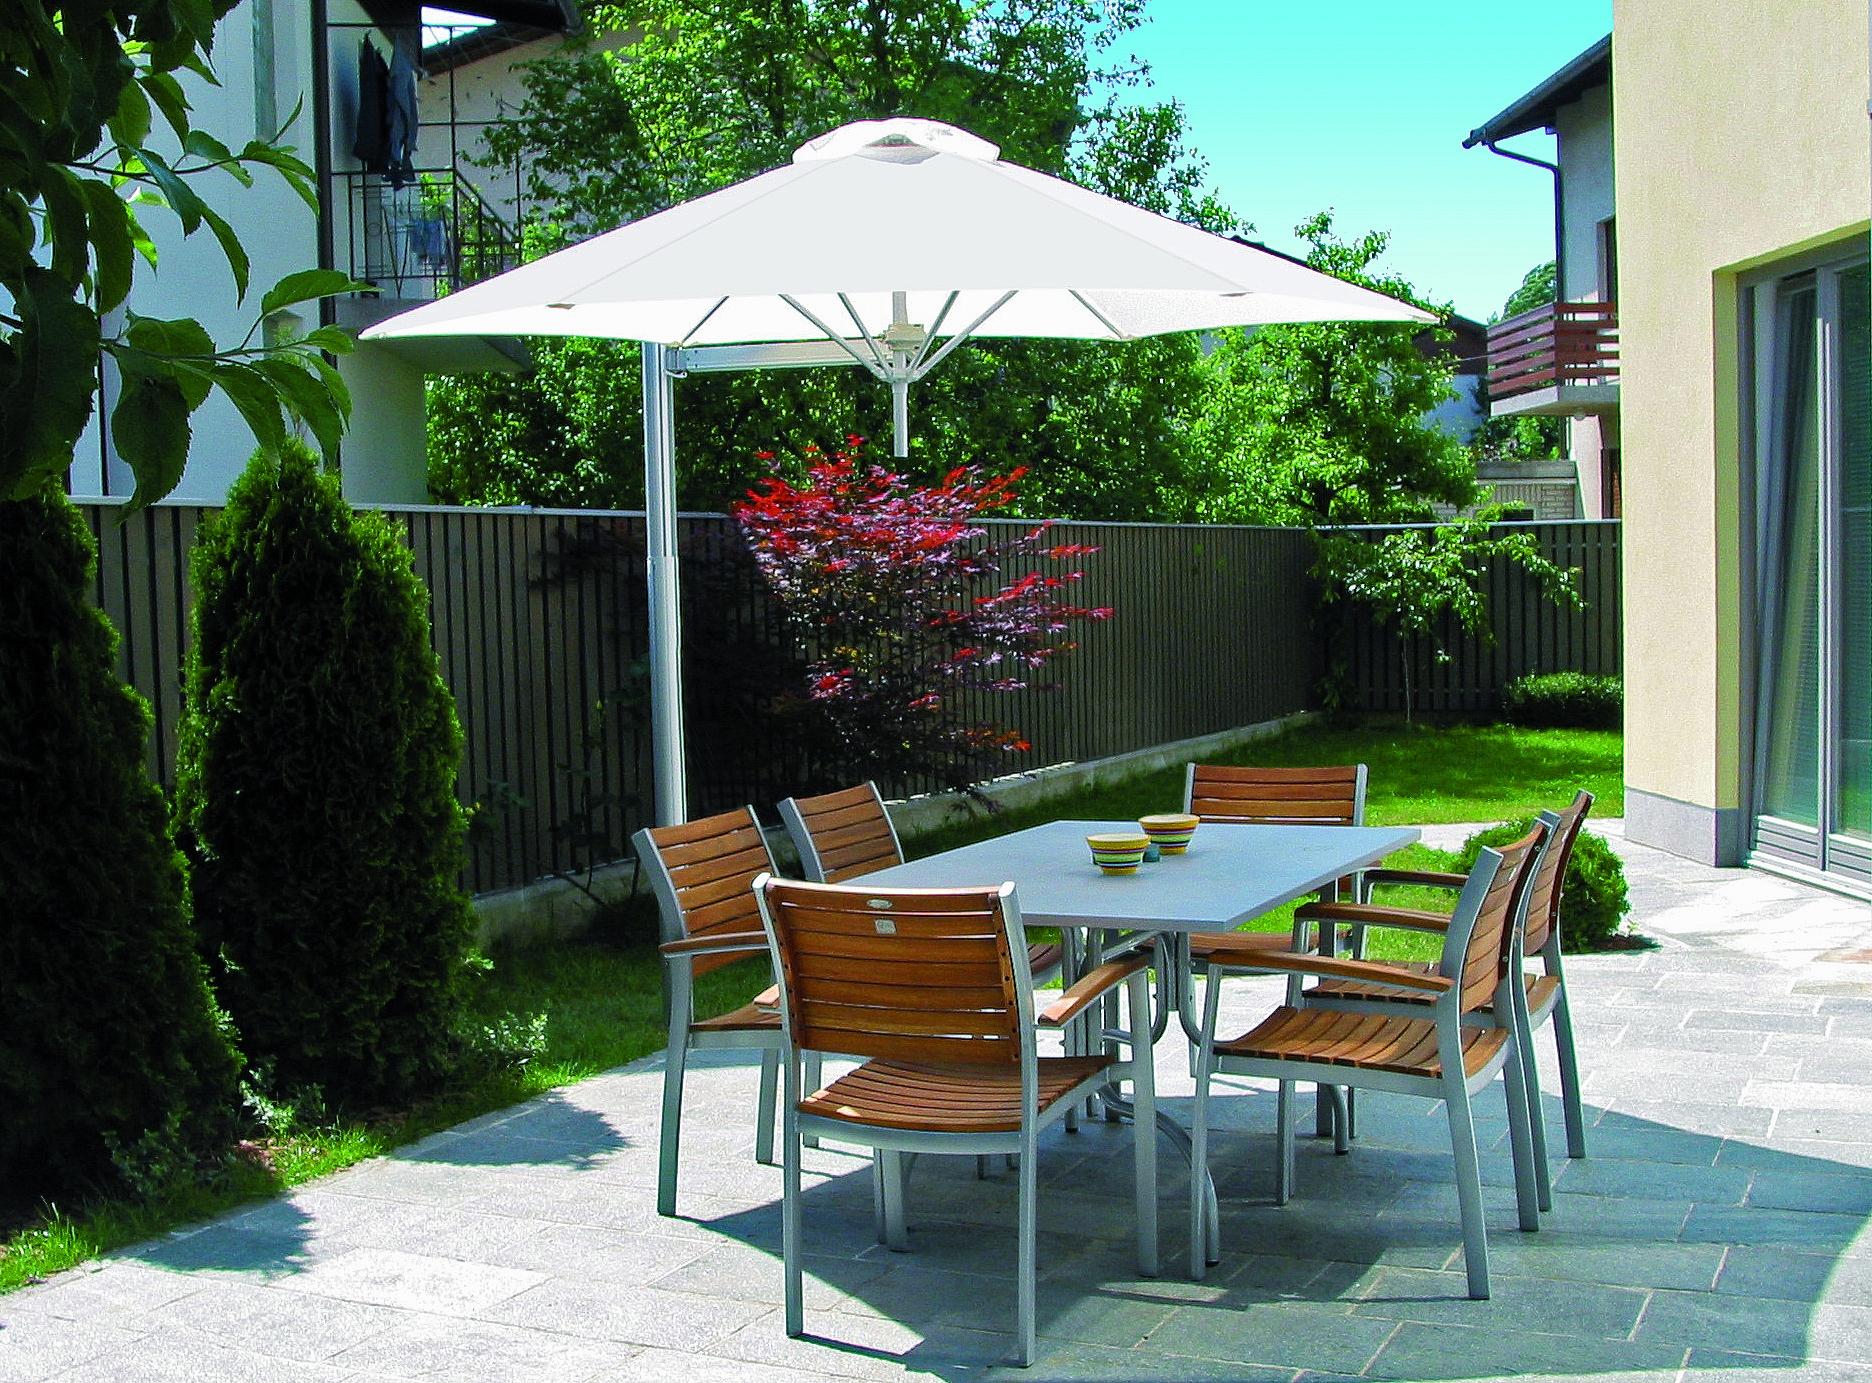 Paraflex-Pole-Mount-umbrella.jpg